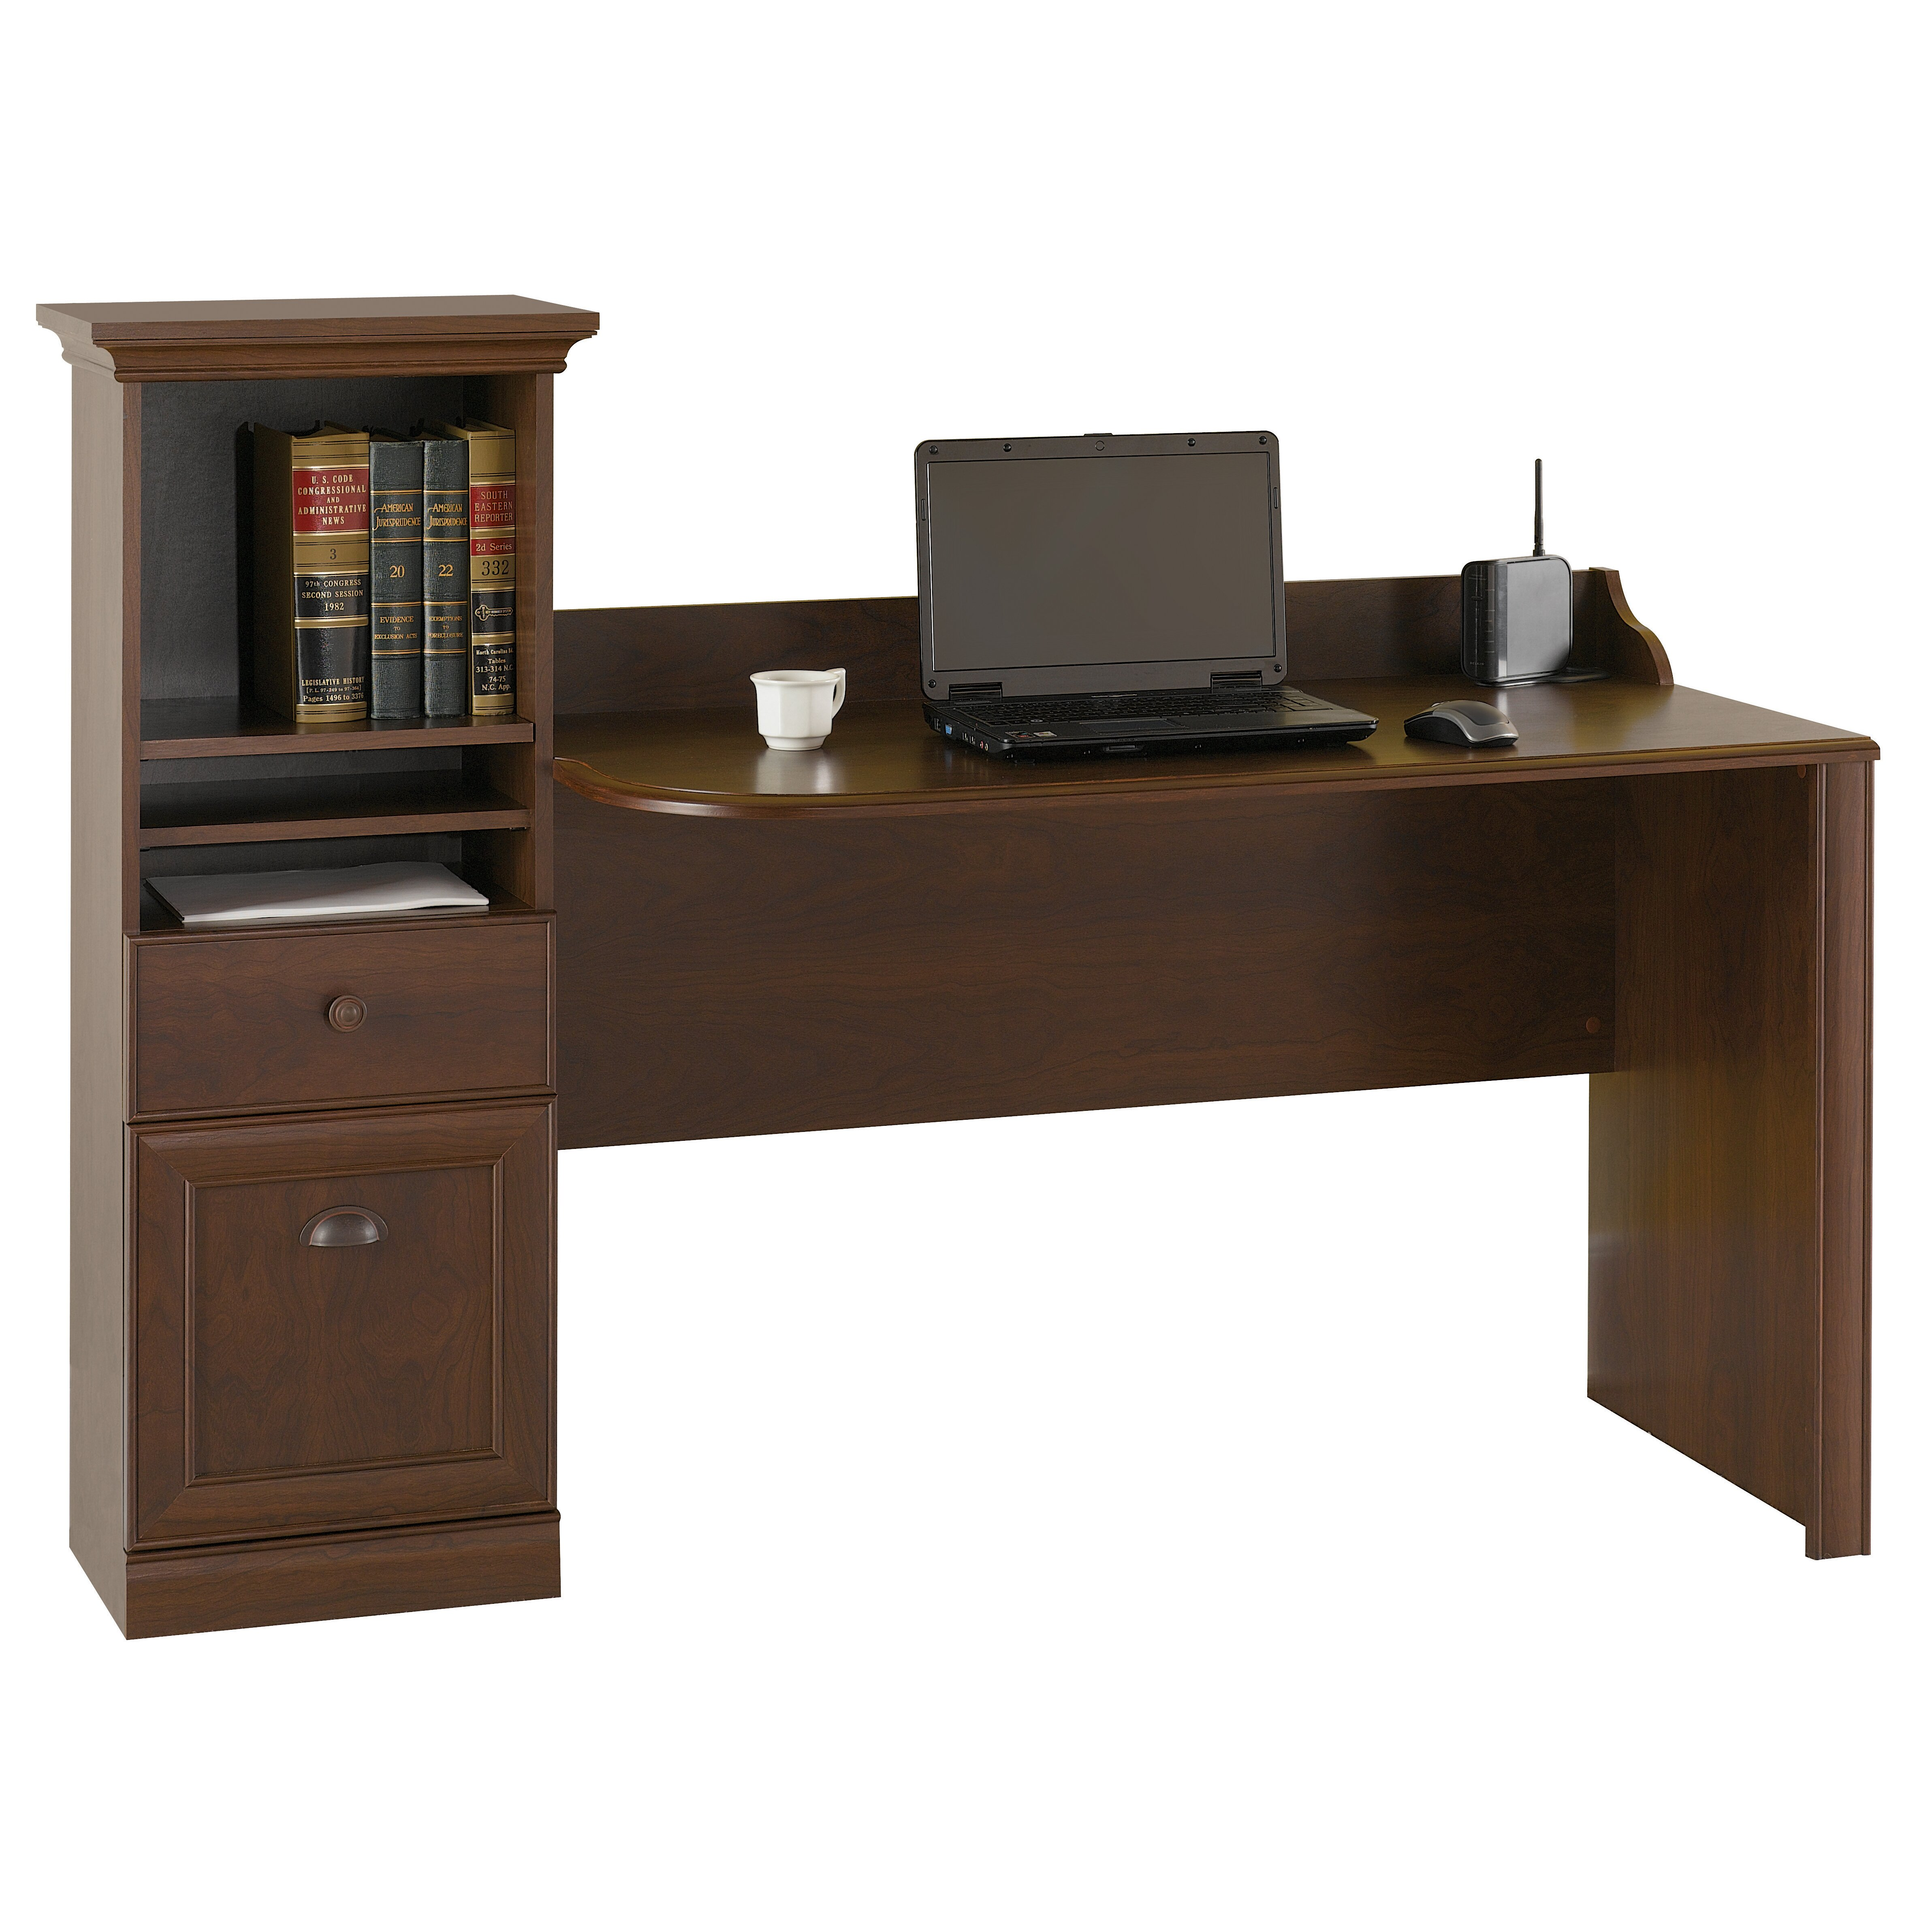 Bush furniture barton computer desk reviews wayfair for Computer desk furniture